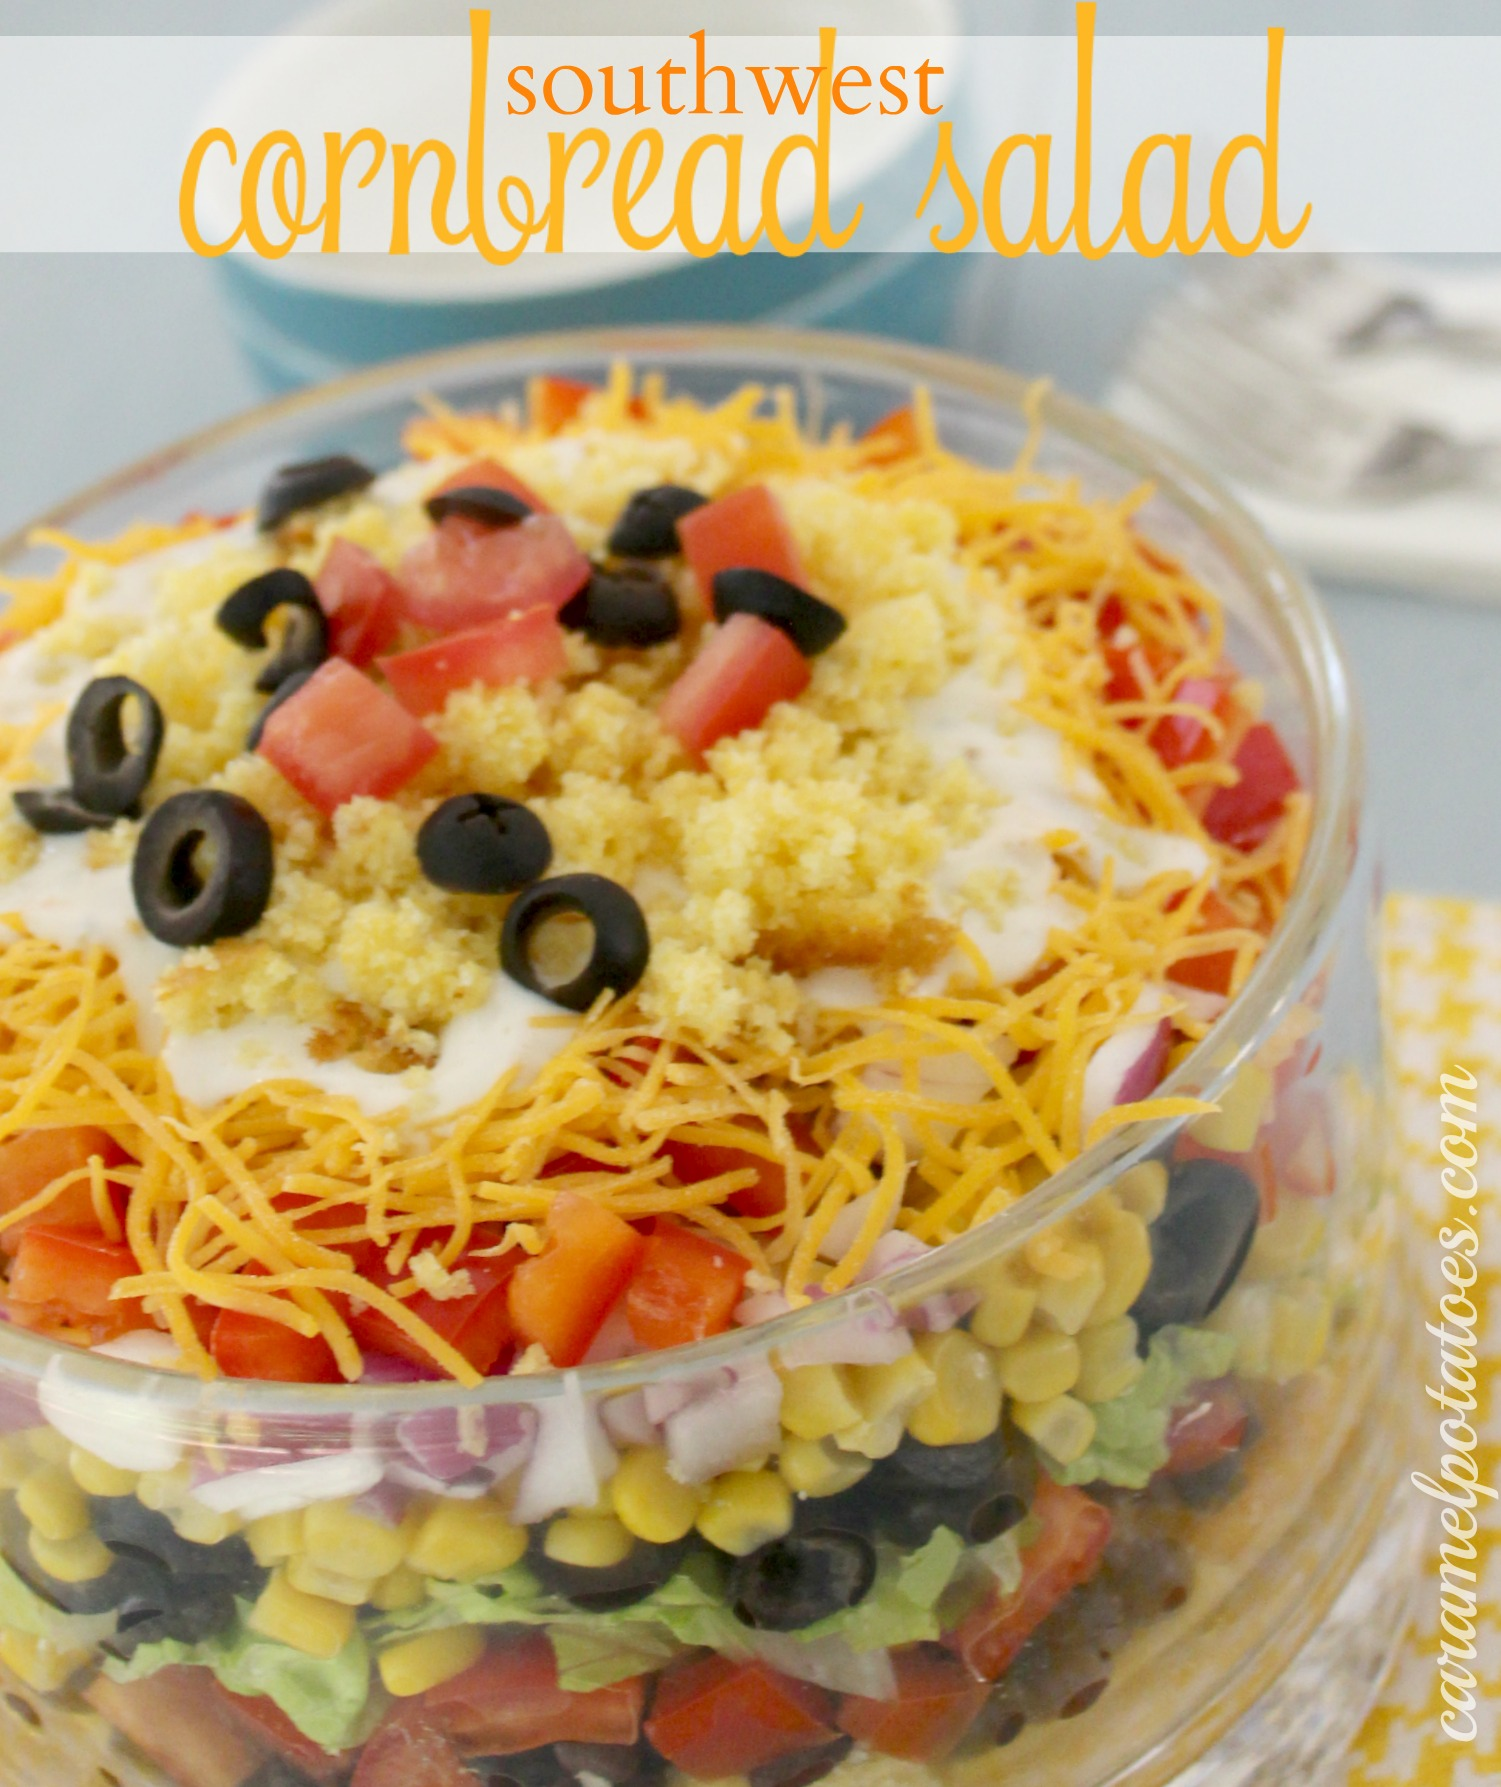 ... salad southwestern chicken and ranch chicken salad southwest cornbread